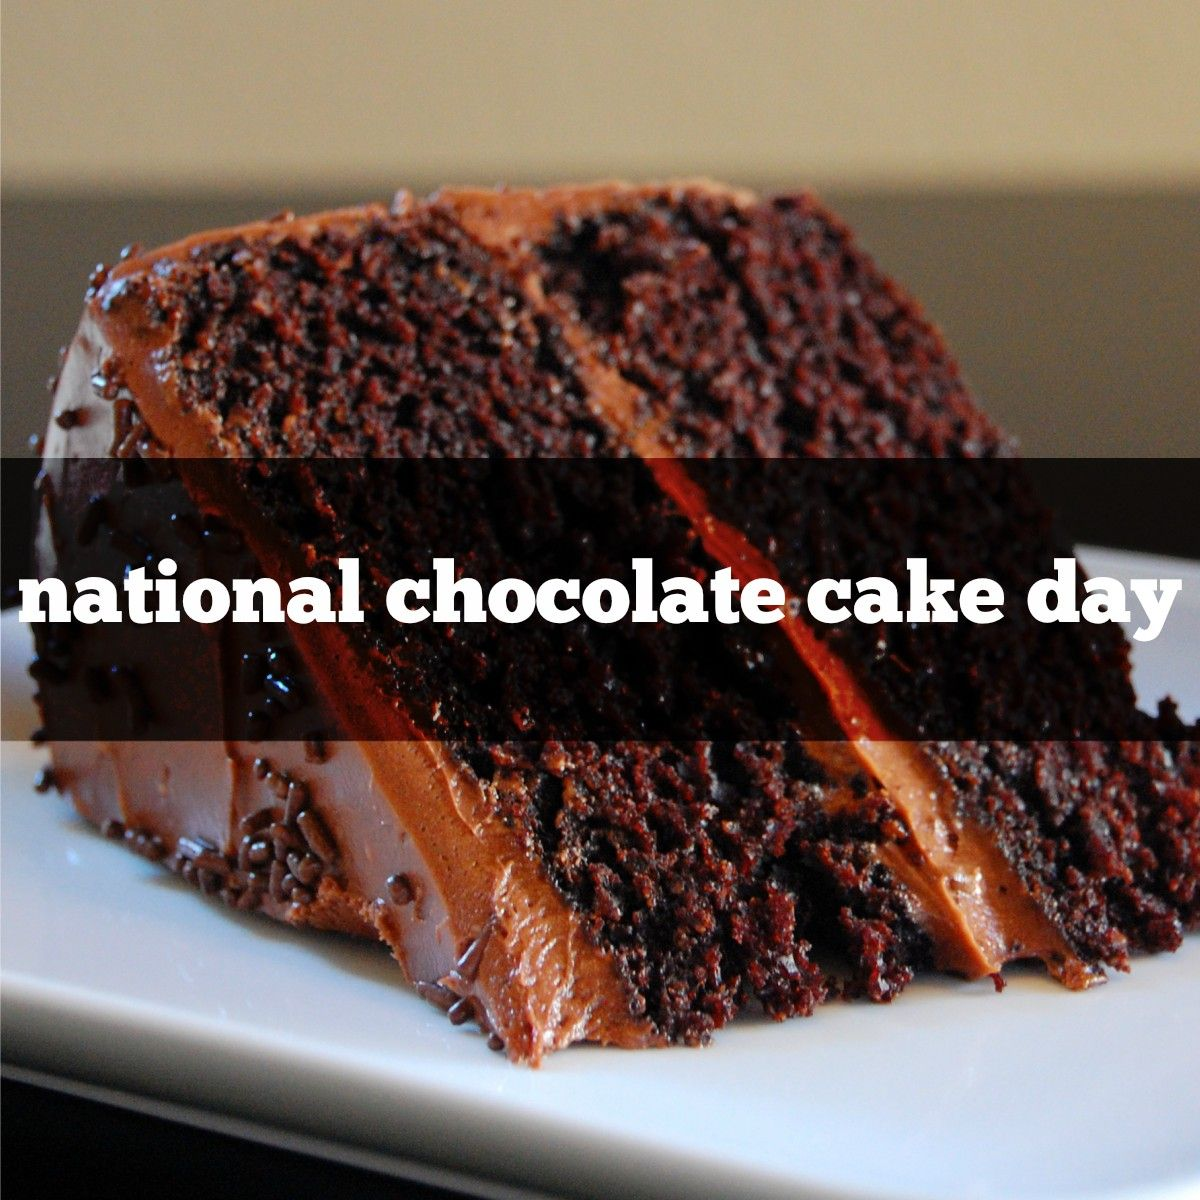 January 27th Is National Chocolate Cake Day National Chocolate Cake Day Cake Day Chocolate Cake